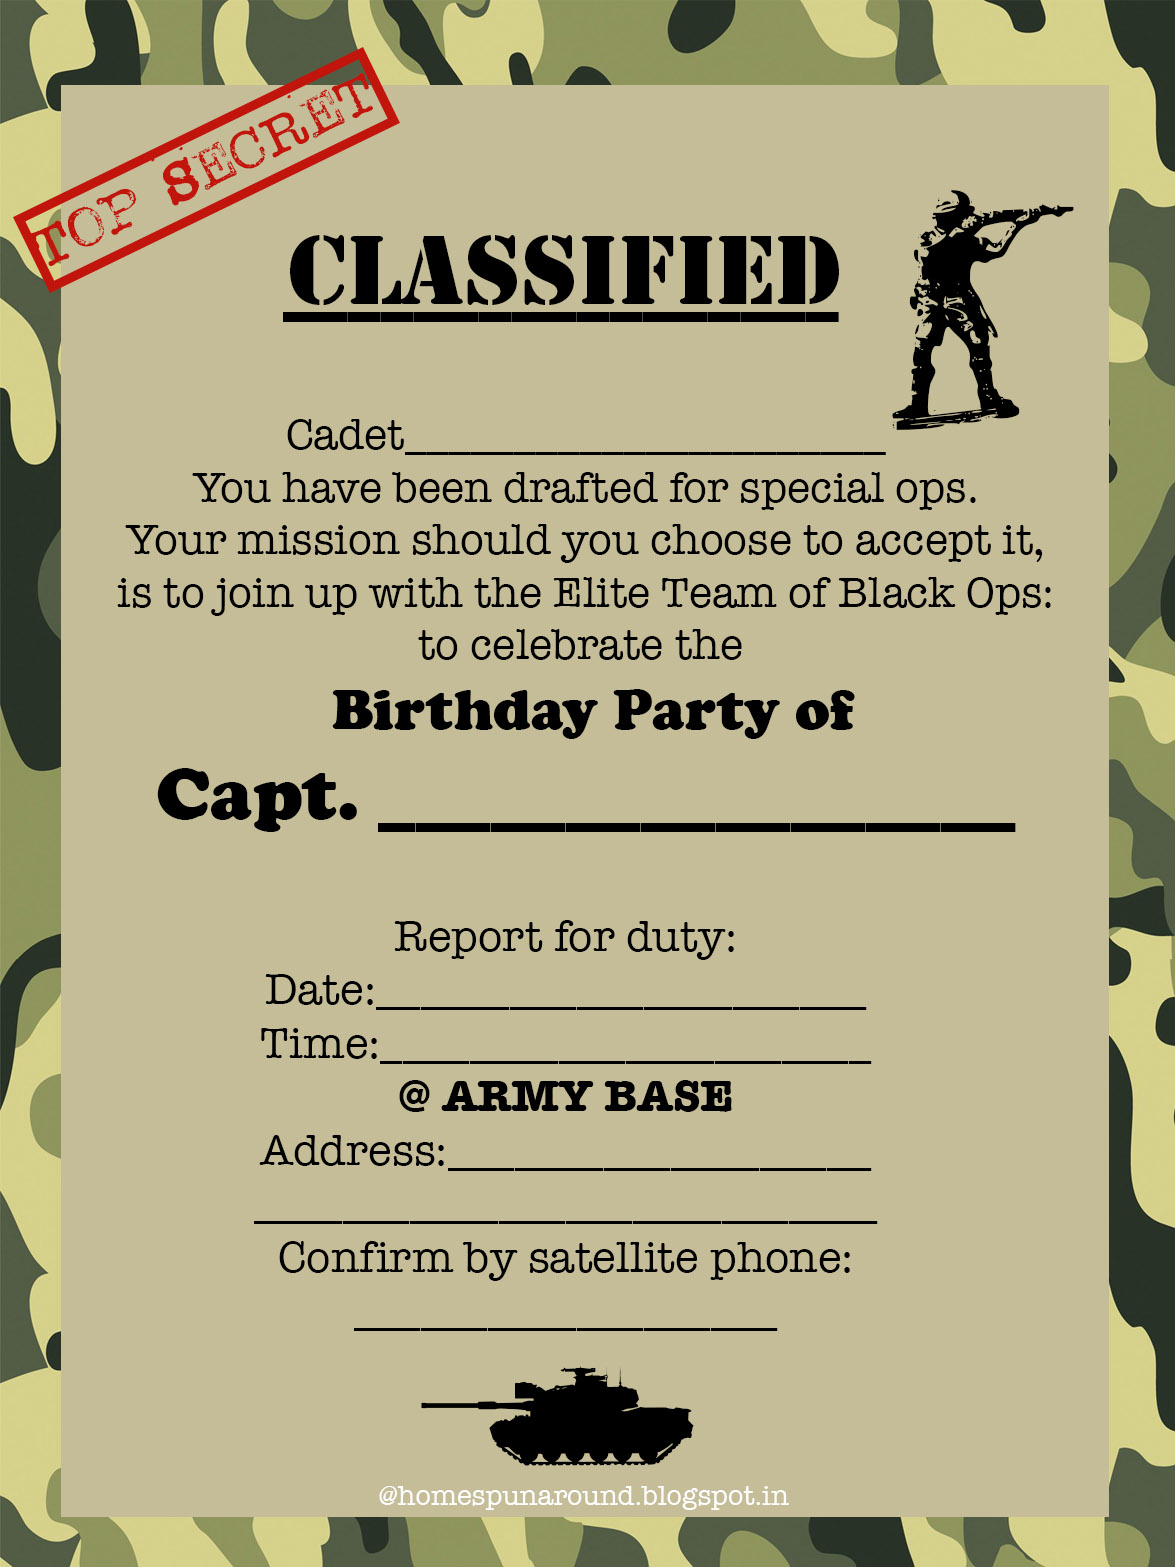 Home-Spun-Around: An Army Themed Birthday Party with Free Printables!